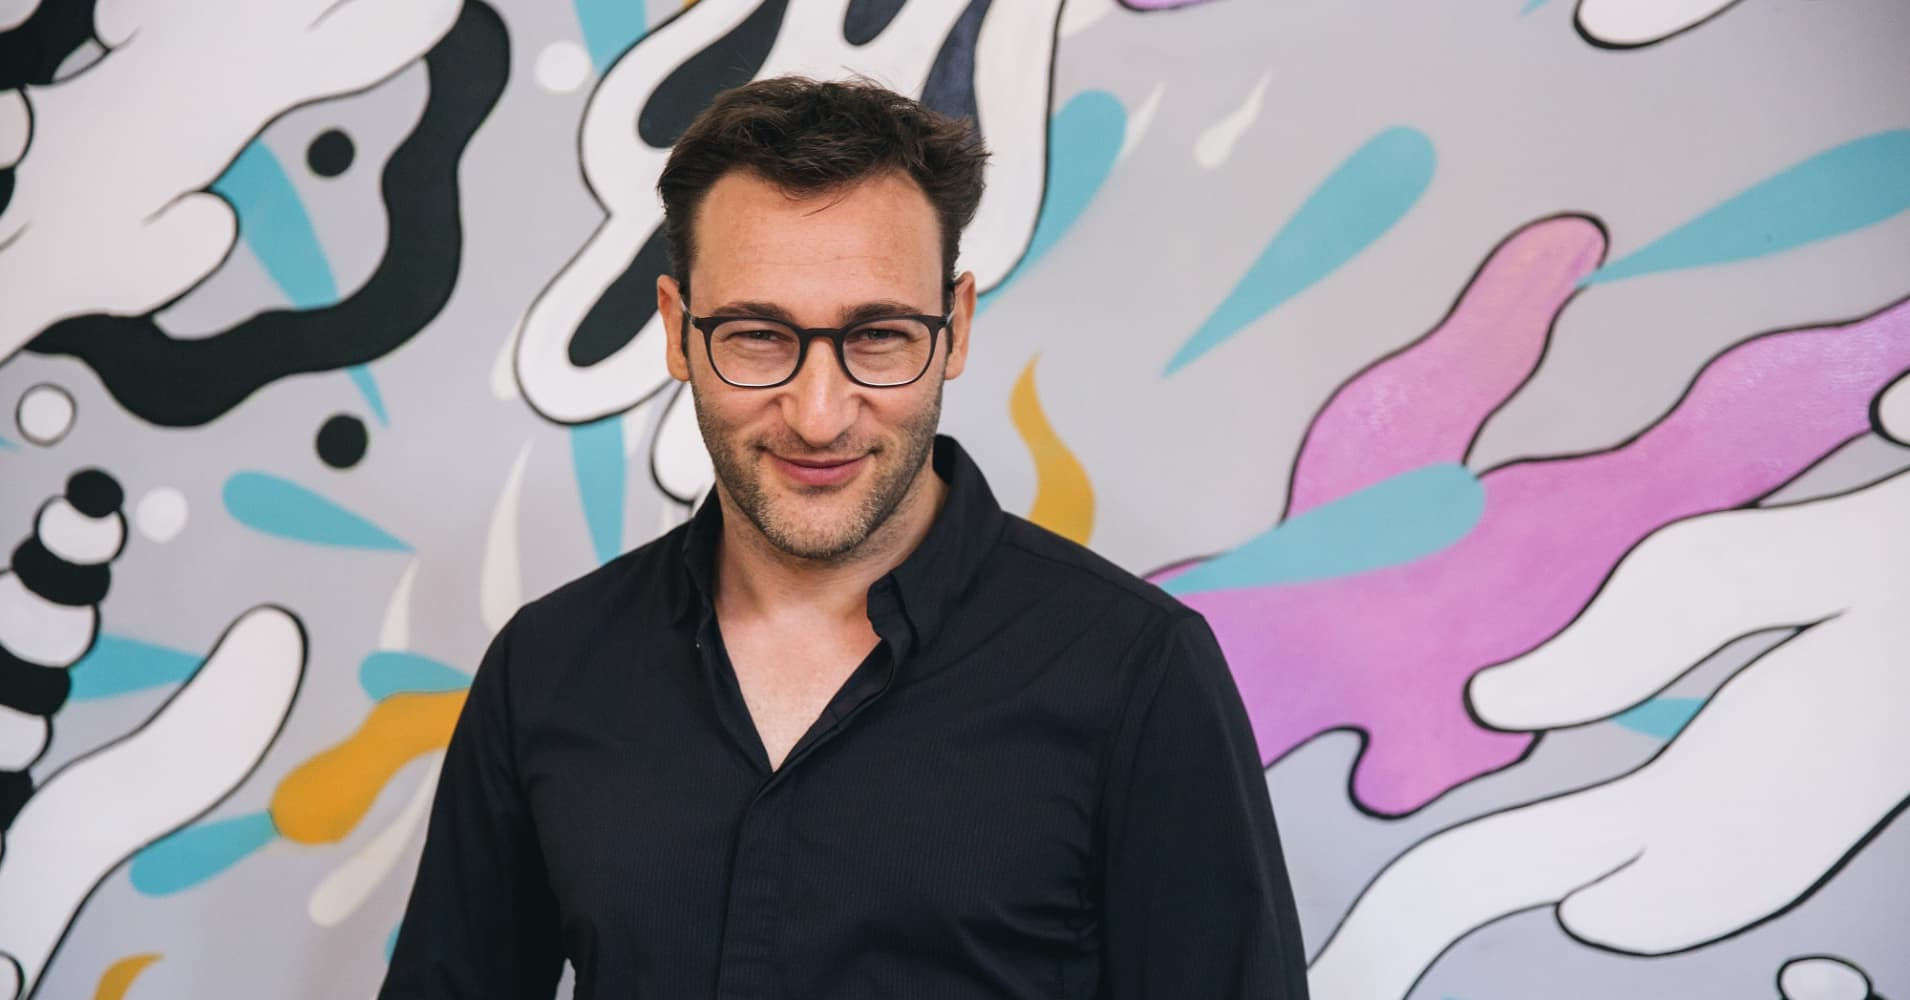 Simon Sinek: Why you should 'lie to get what you want'